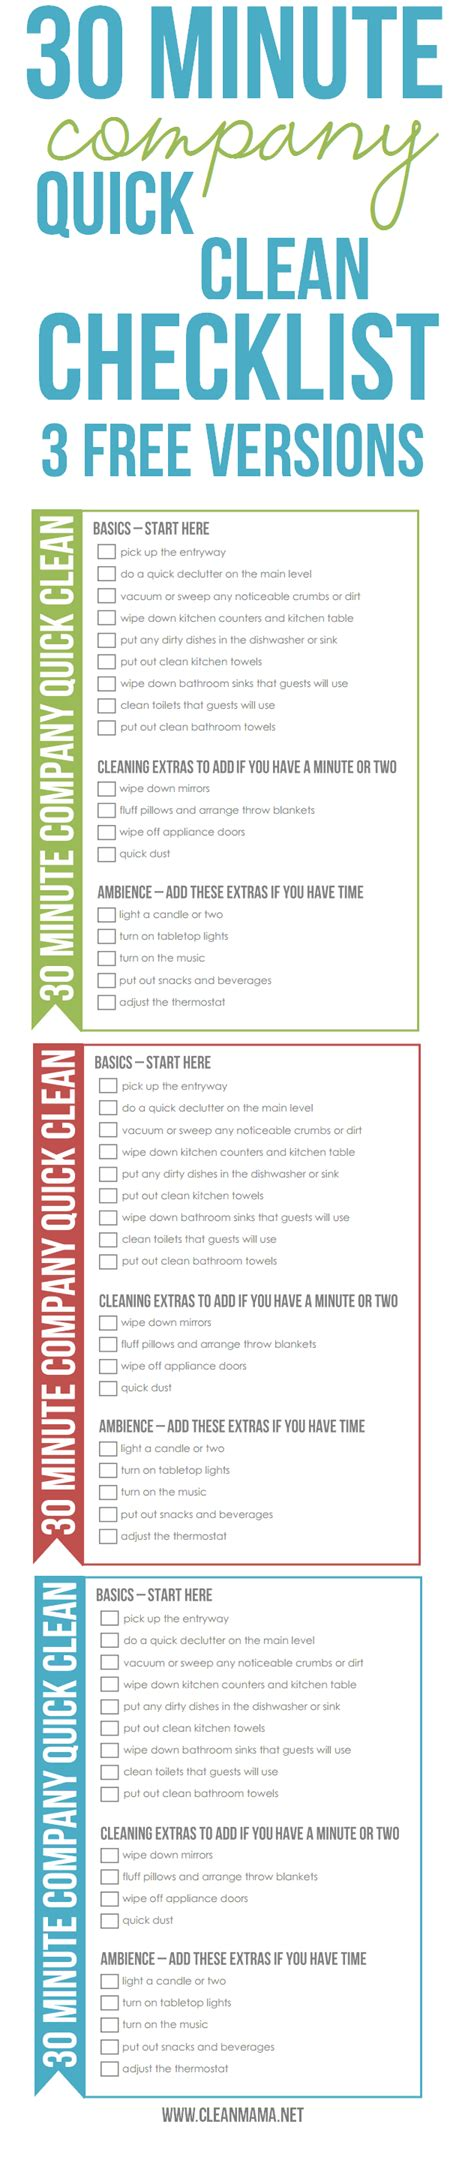 cleaning list simplify the season 30 minute company clean checklist clean